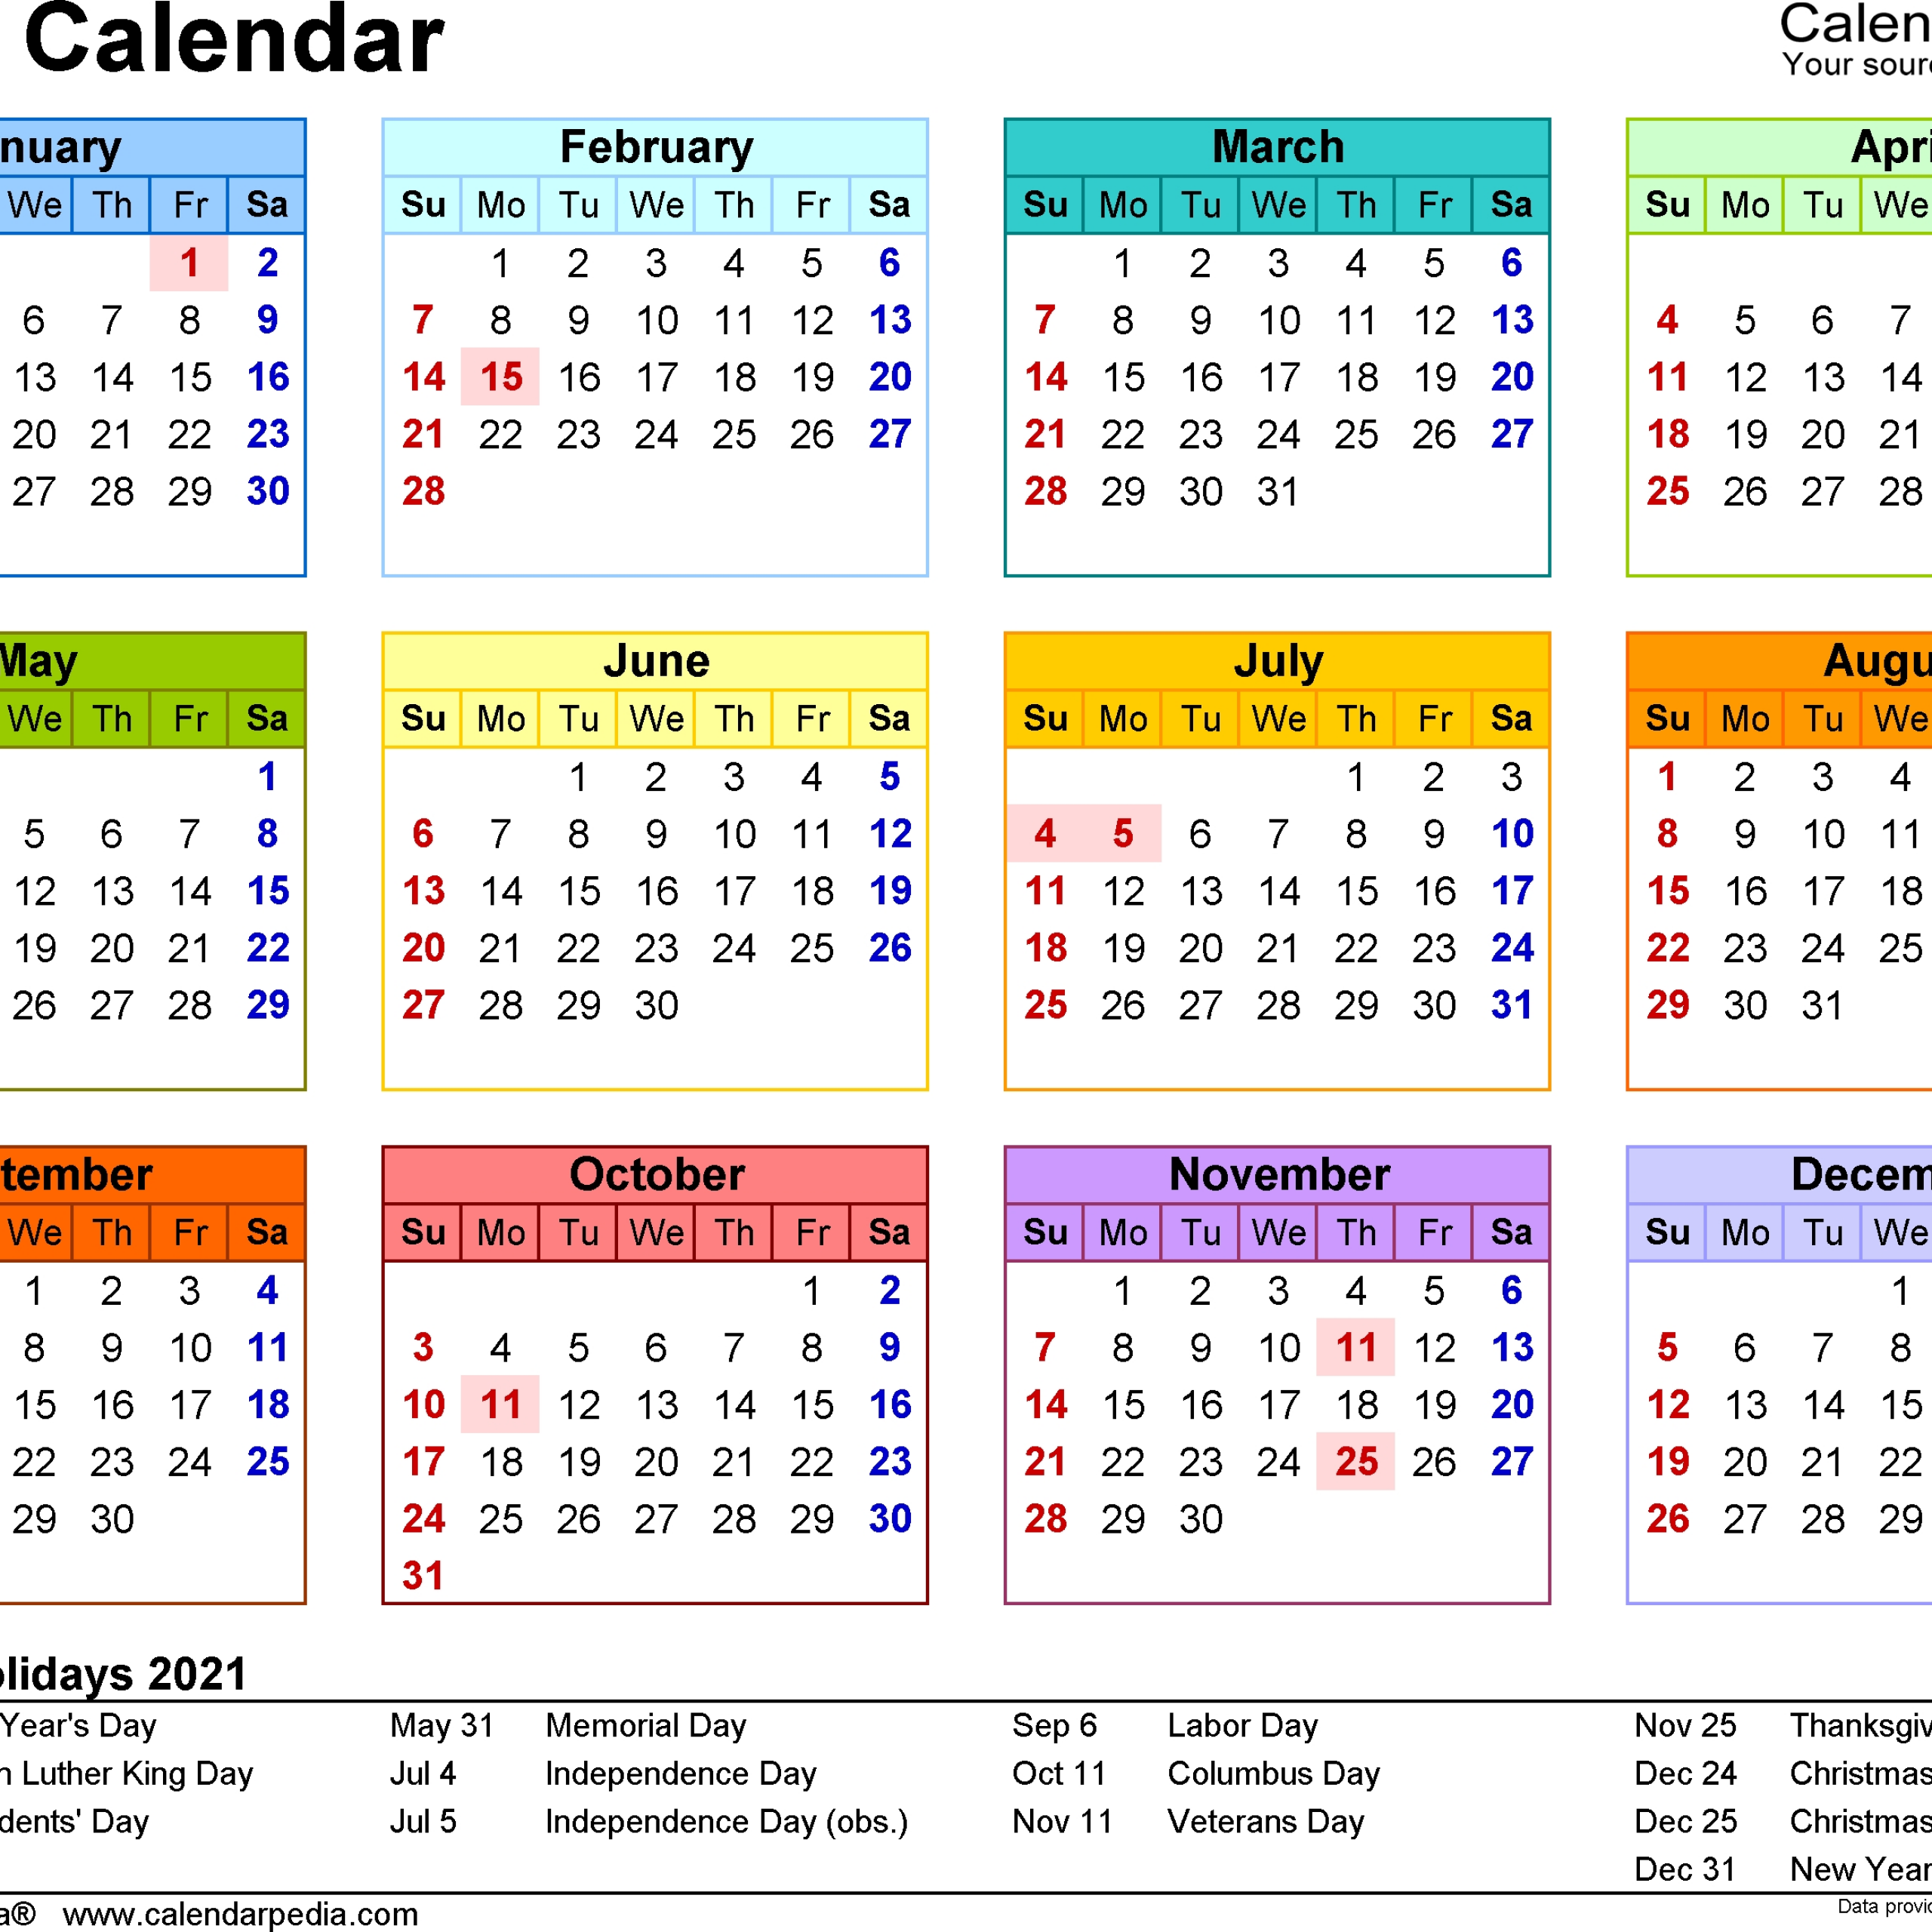 Free printable calendar with holidays for 2021 or any year. 20+ 2021 Holidays Calendar - Free Download Printable ...